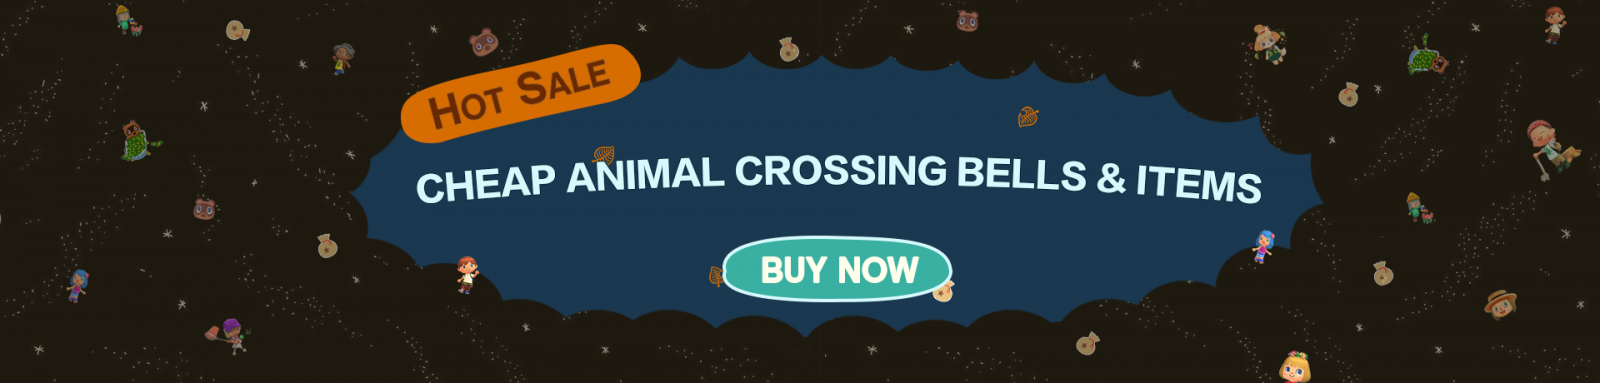 Some improvements will make Animal Crossing: New Horizons better